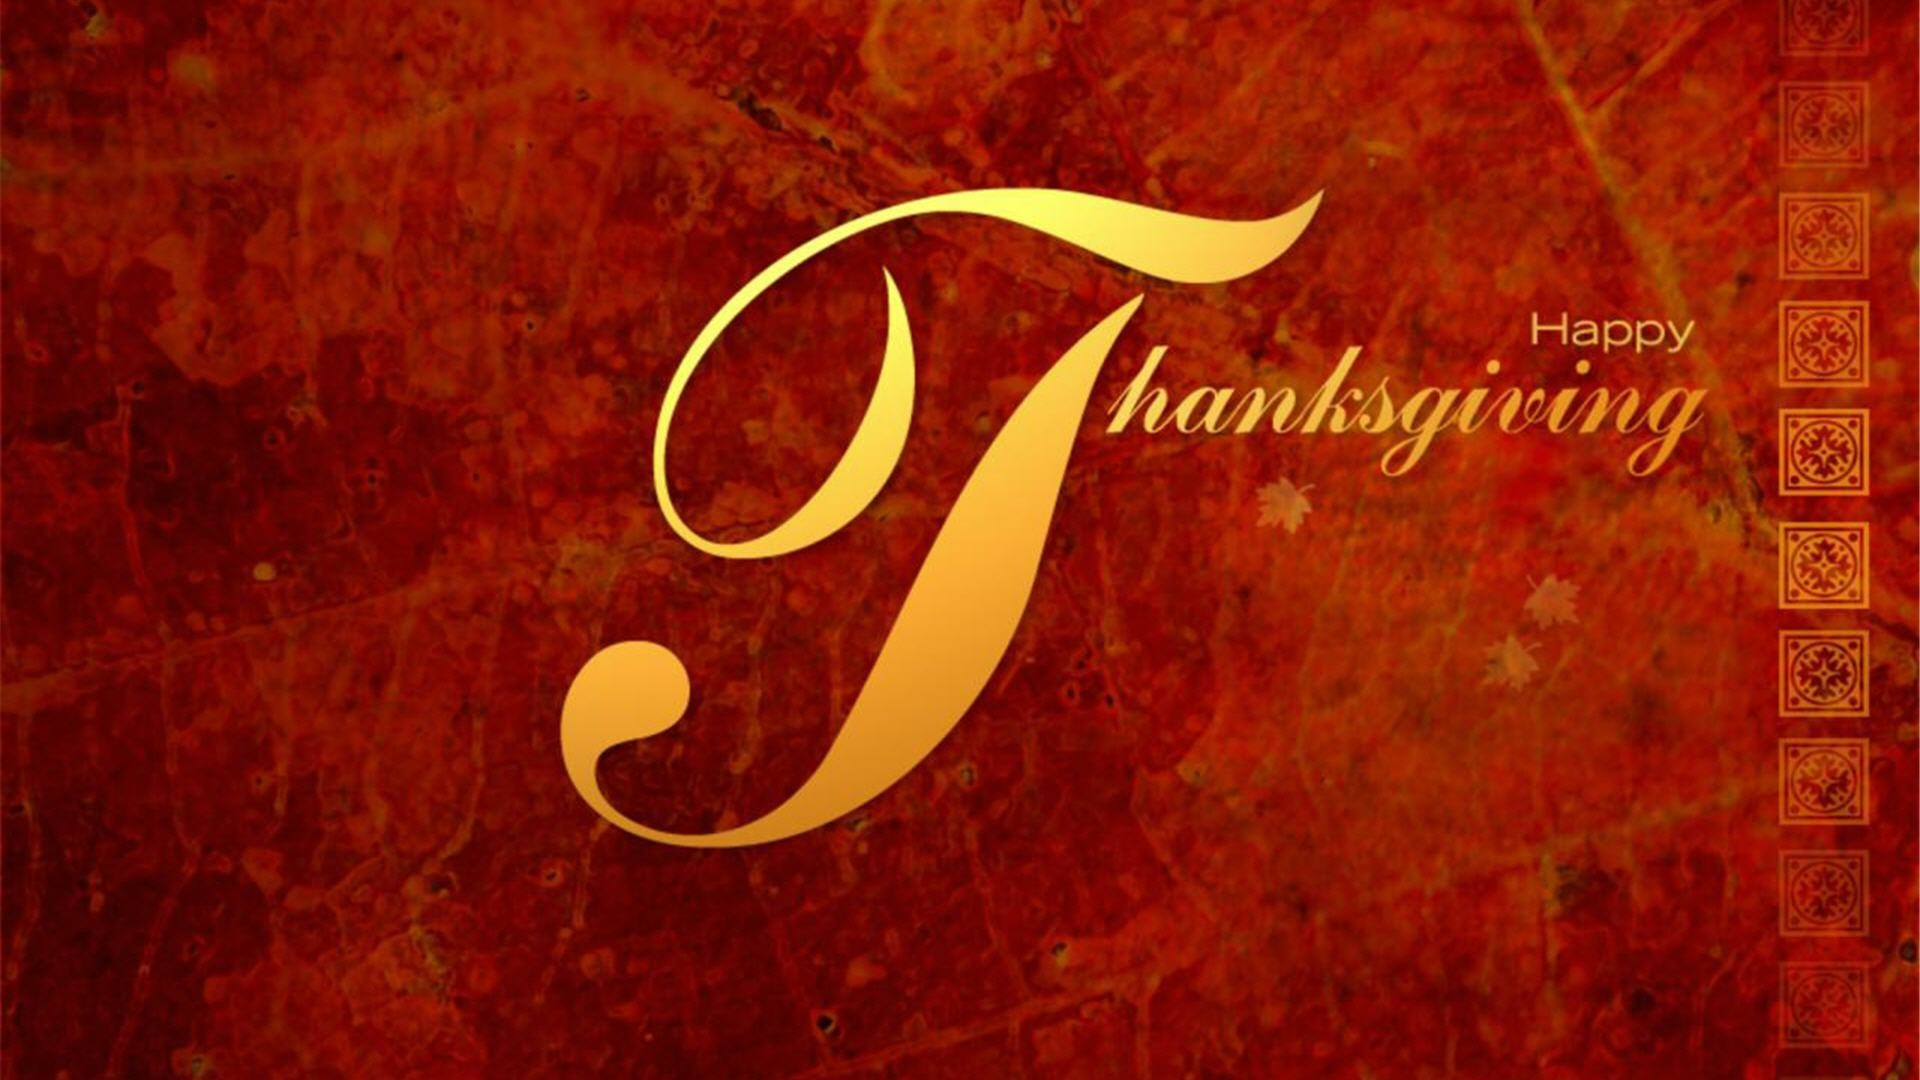 1920x1080 Free Thanksgiving Desktop iphone ipad Backgrounds Thanksgiving